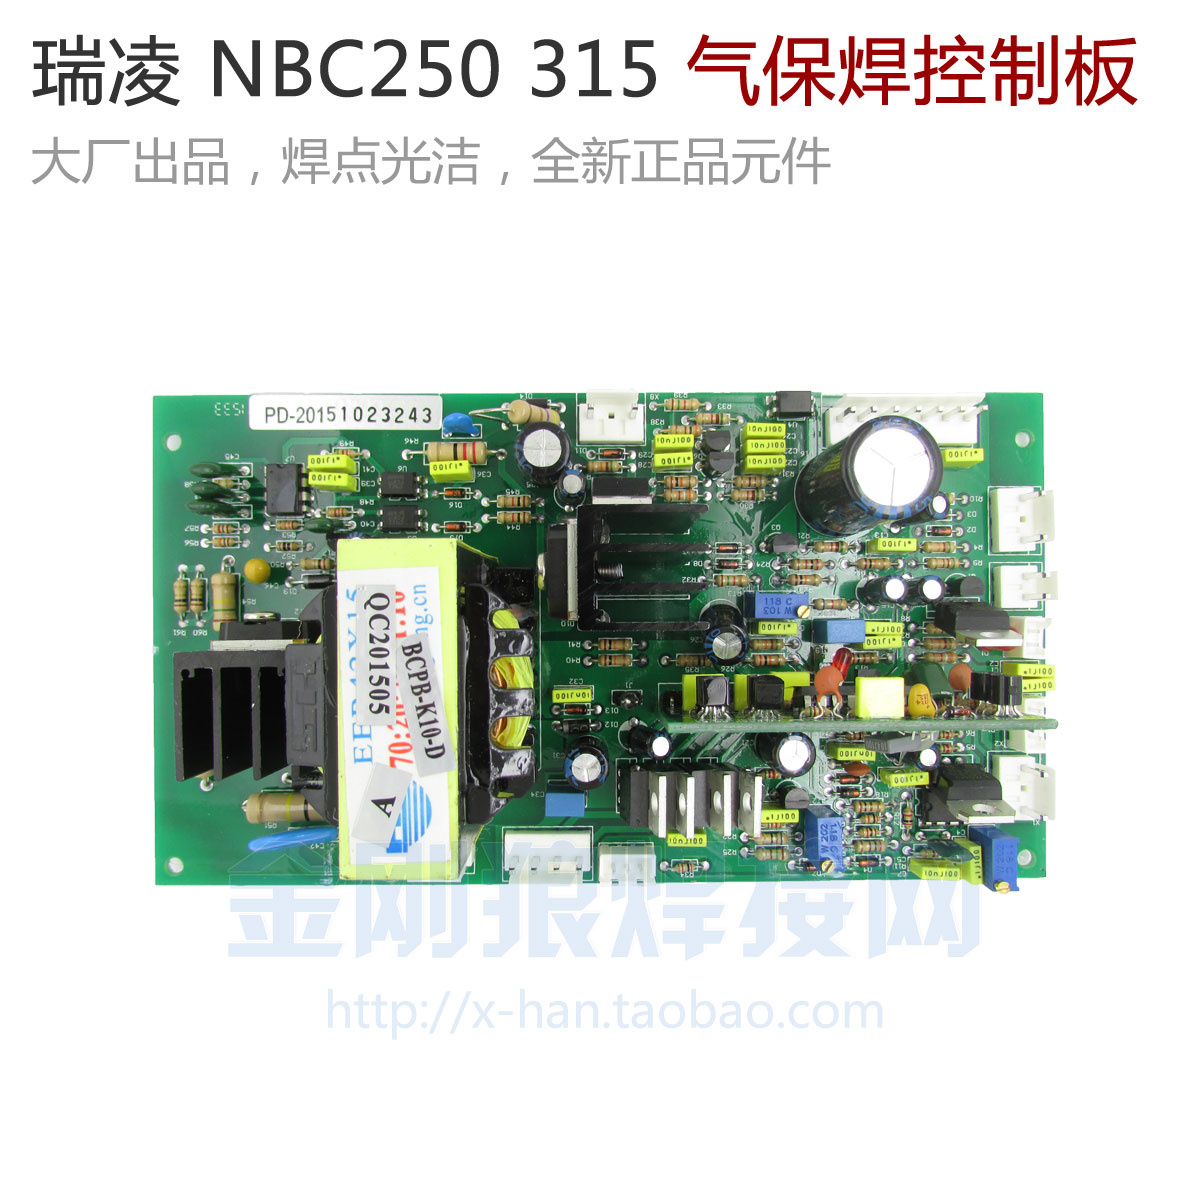 NBC250 315 MOS Inverter Carbon Dioxide Gas Shielded Welding Machine Control Board Circuit Board argon arc welding plasma carbon dioxide co2 gas shielded welding machine solenoid valve copper coils